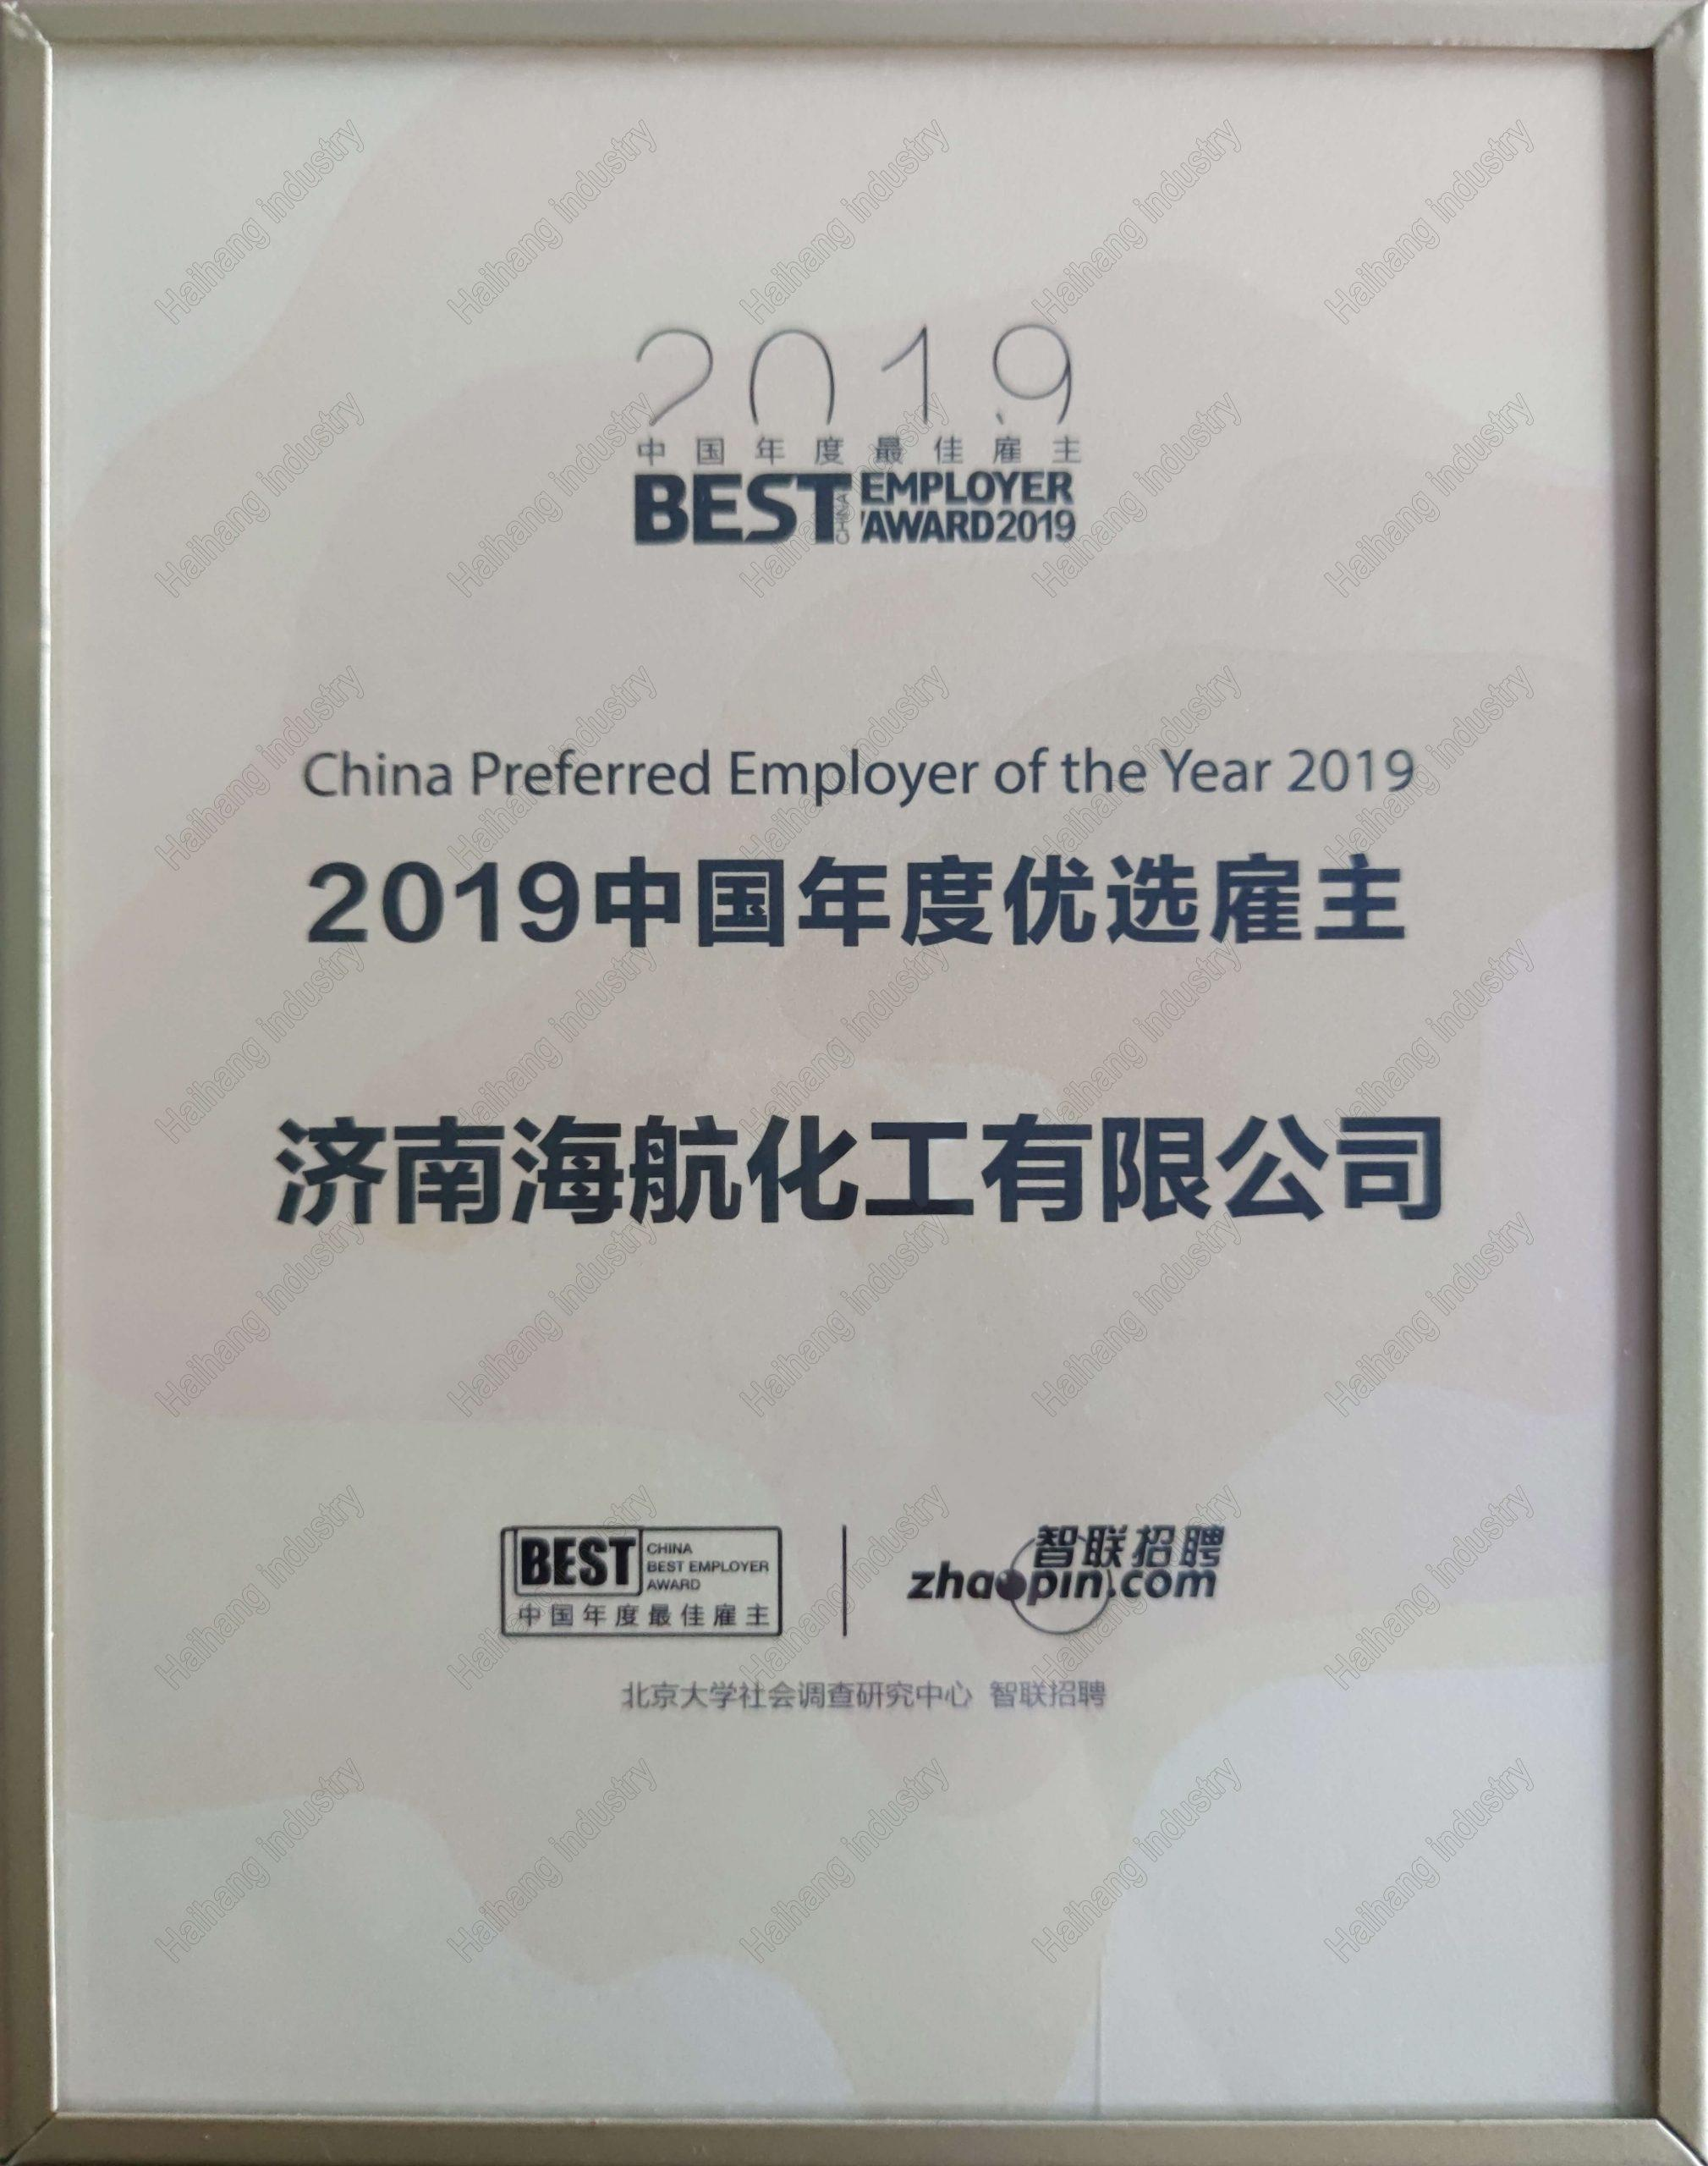 2019 Best Employer of the Year